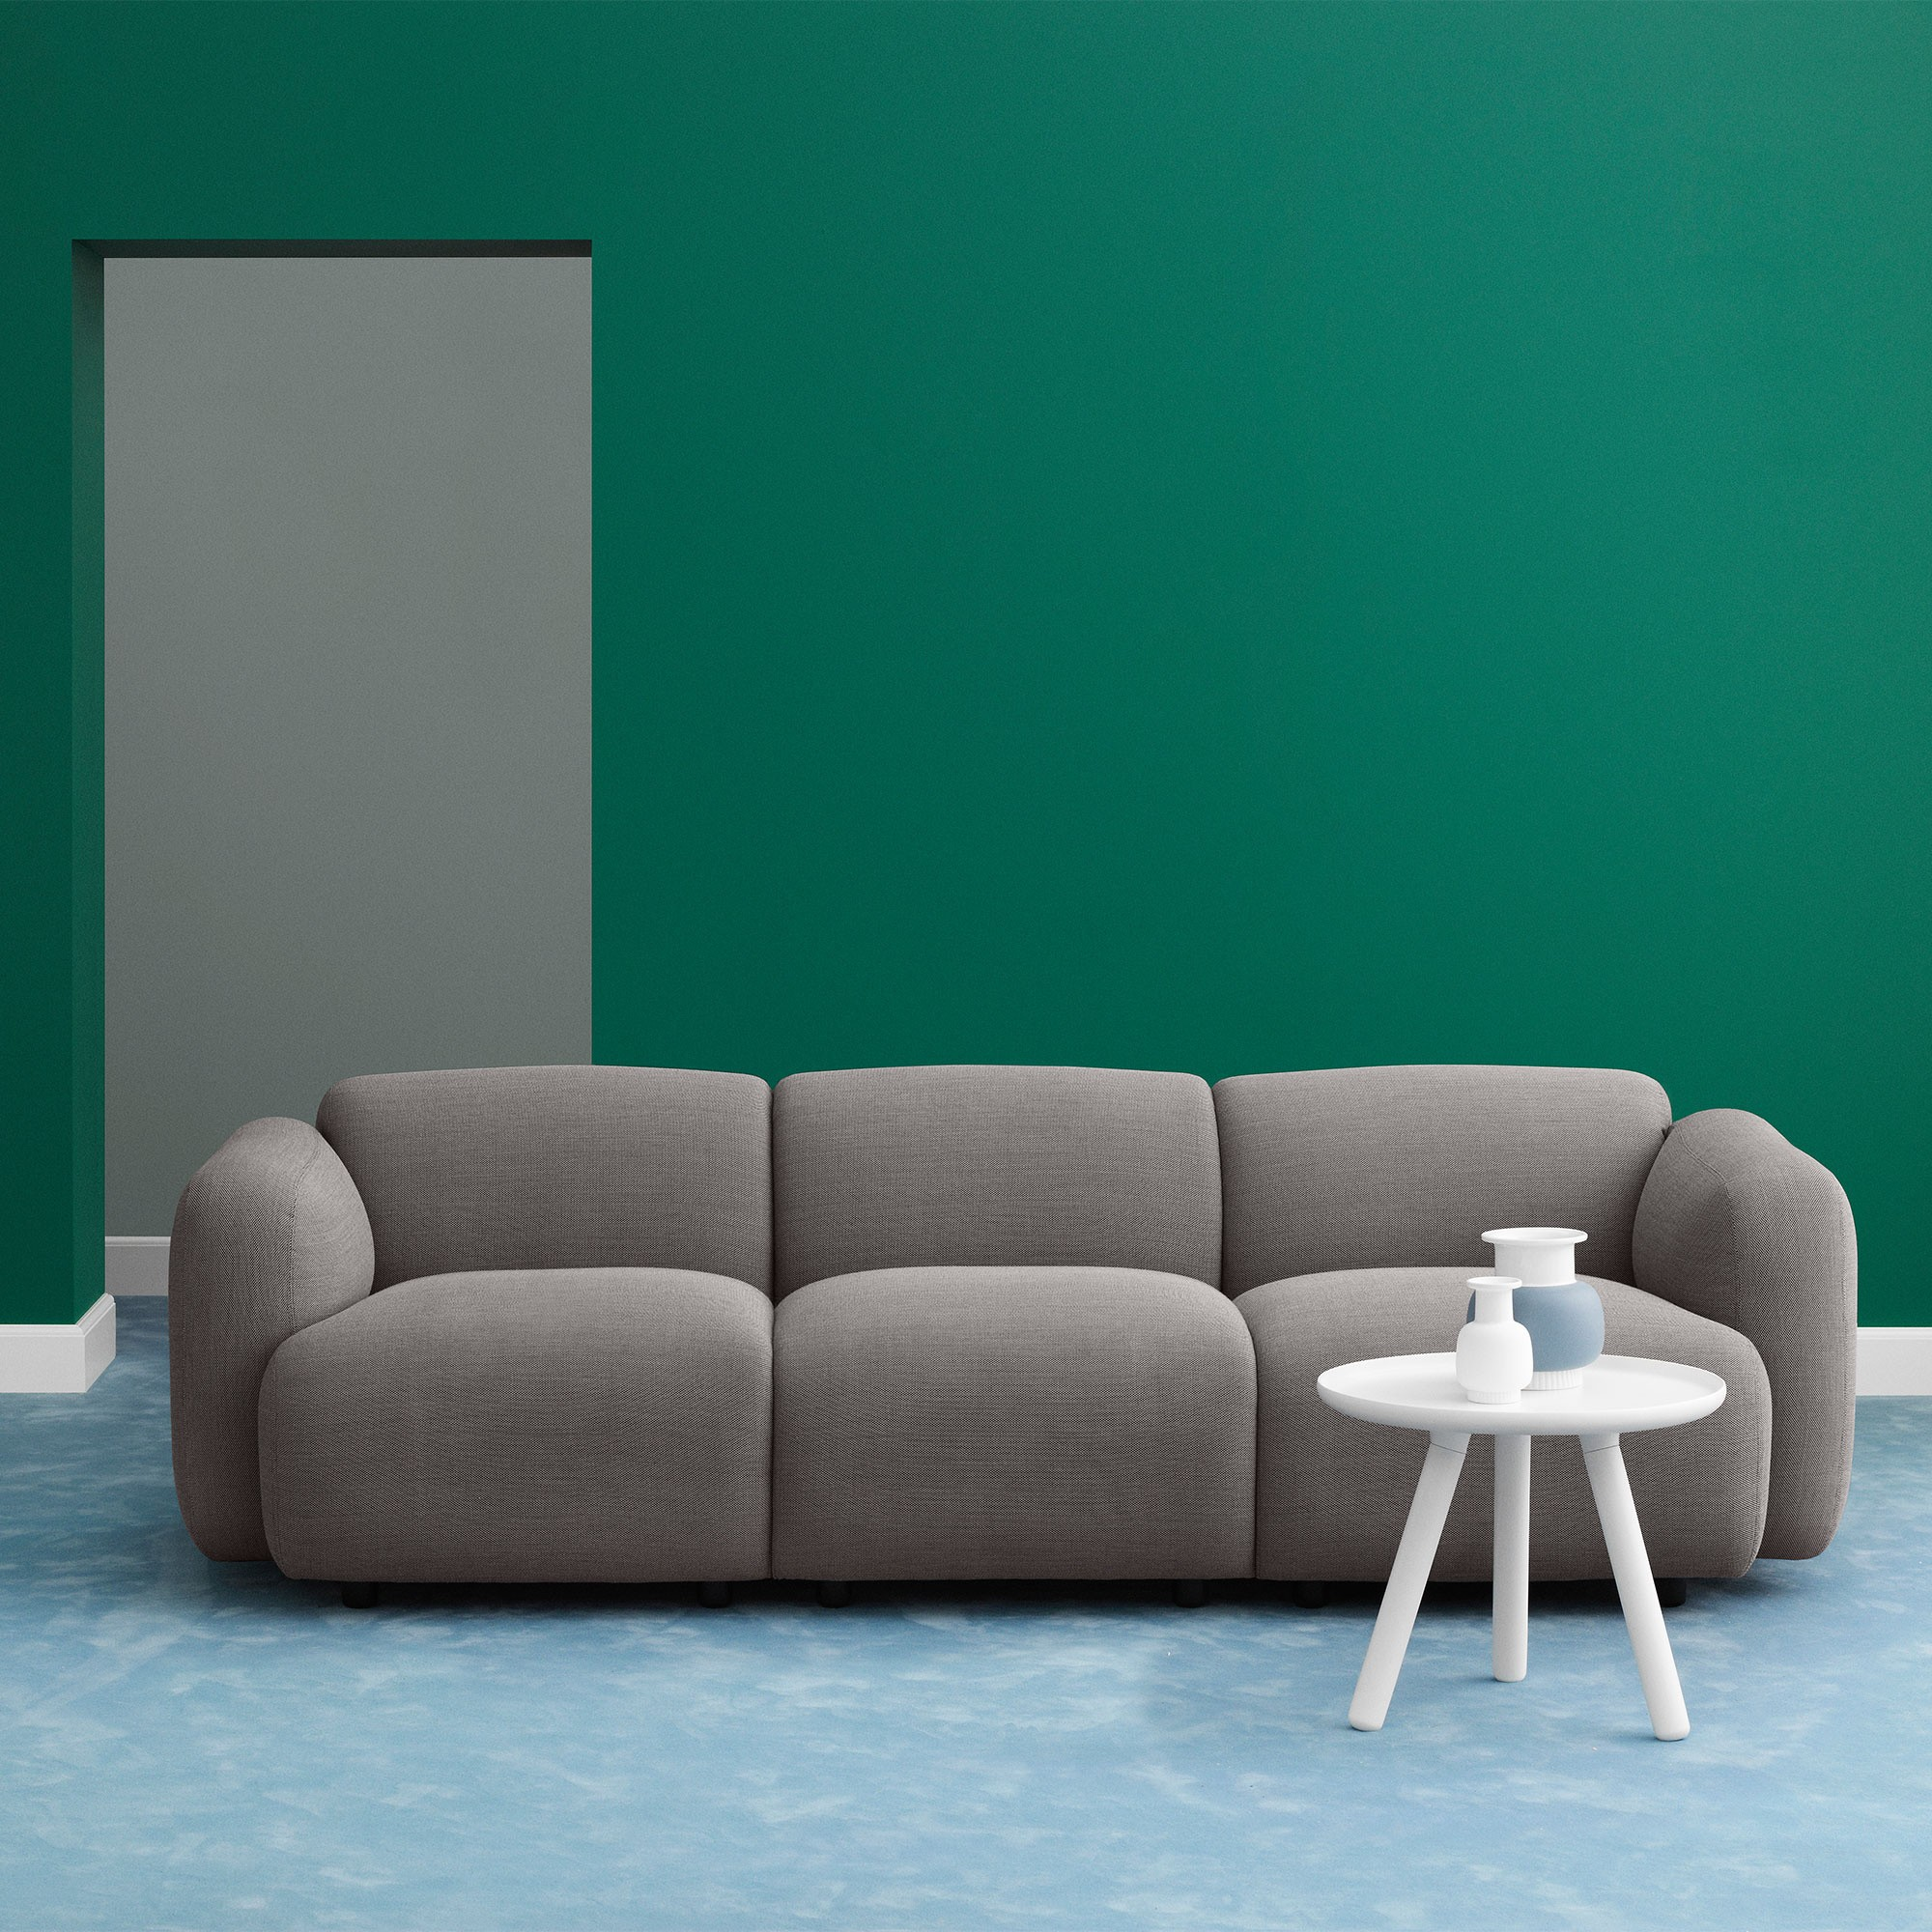 Swell Sofa 8-Seater